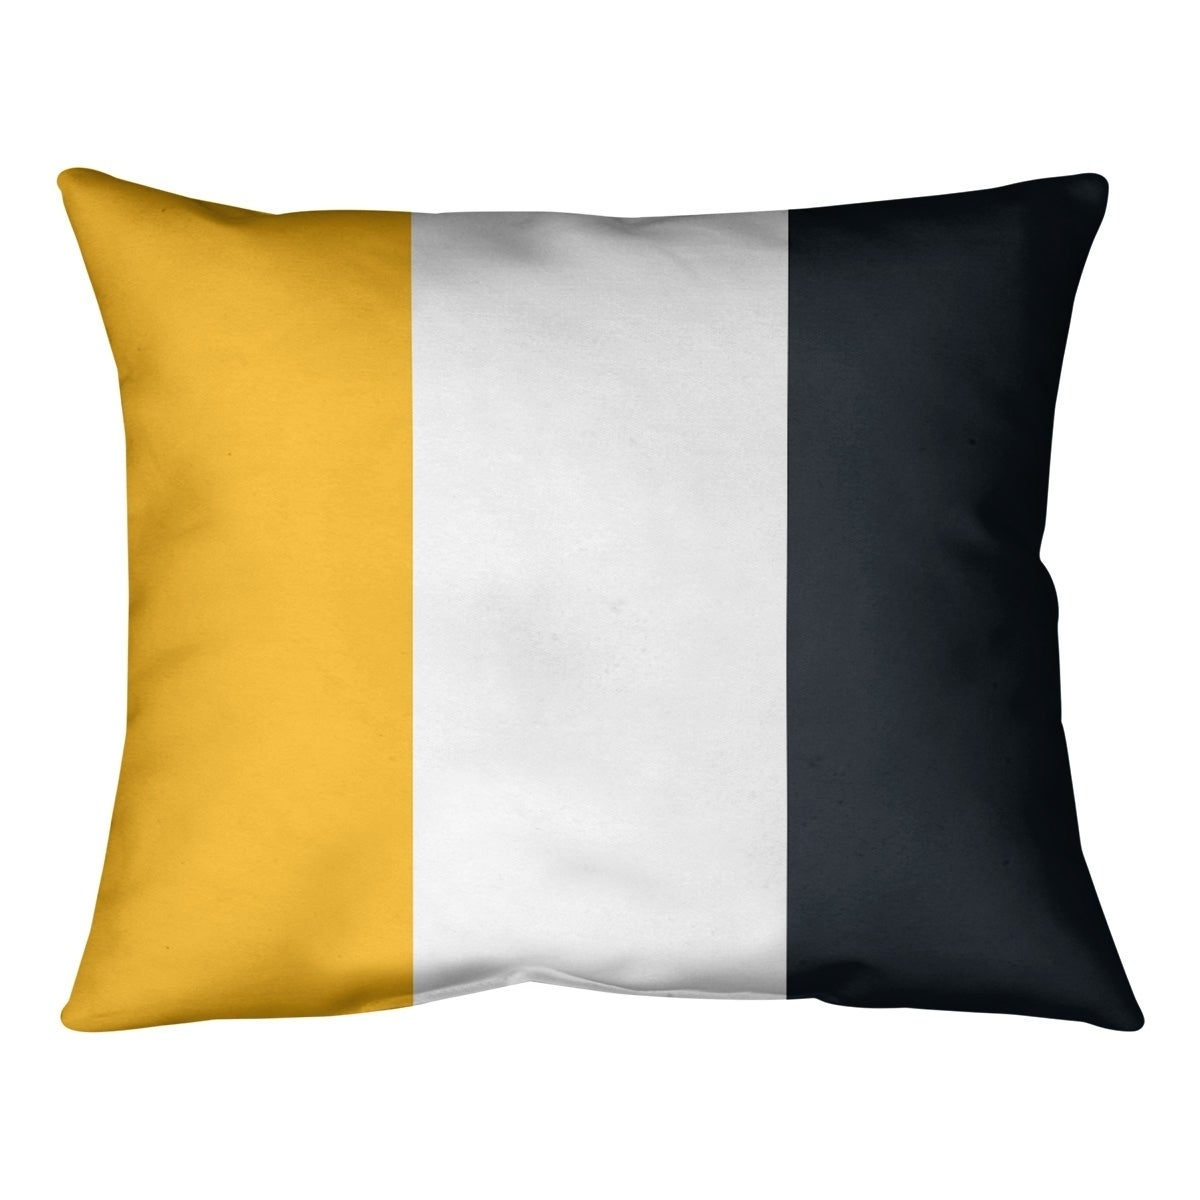 Pittsburgh Pittsburgh Football Stripes Pillow Spun Polyester Overstock 30285707